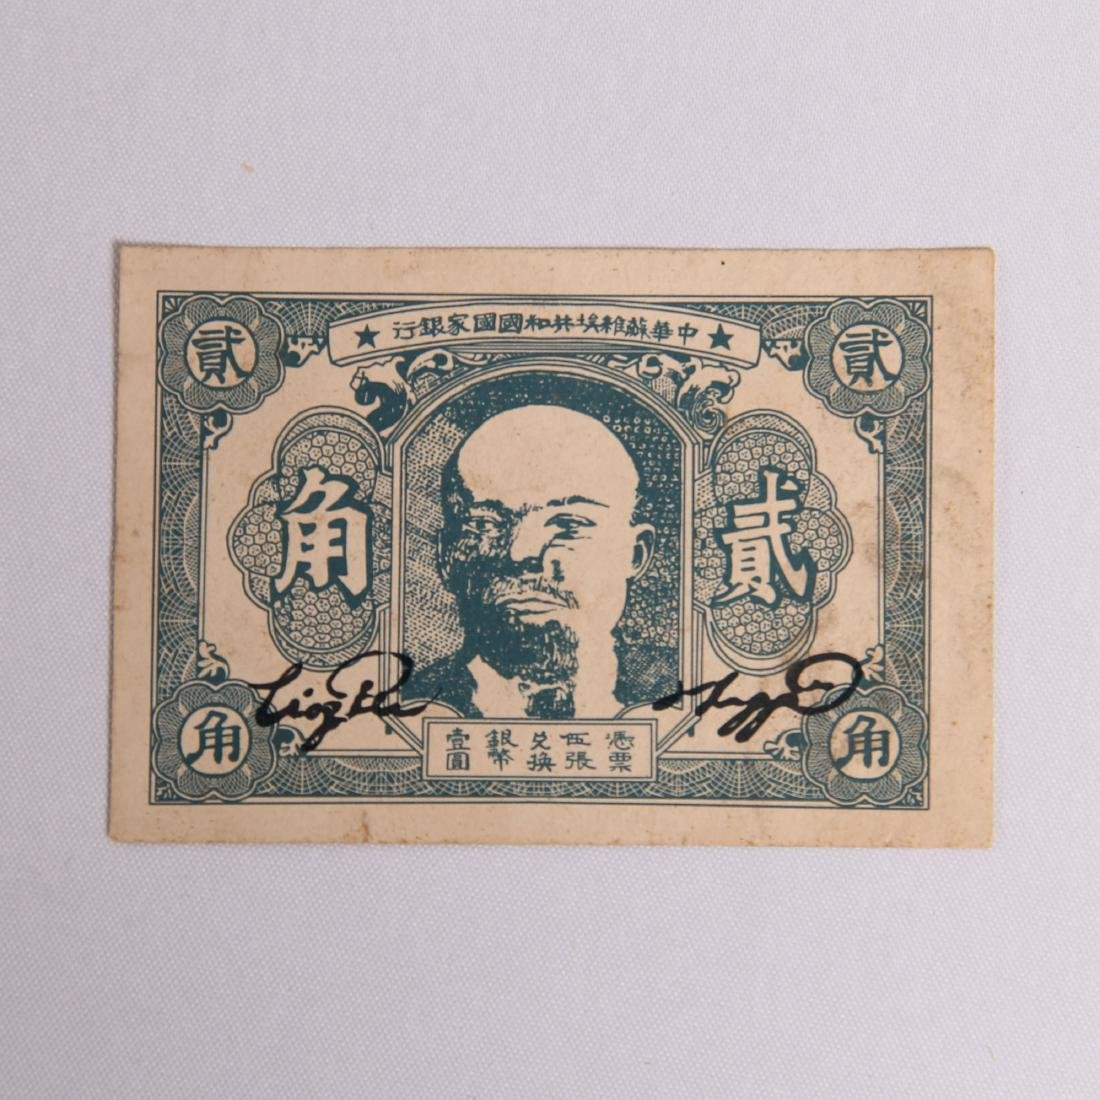 CHINESE SOVIET BANK NOTE 20 CENT 1930S